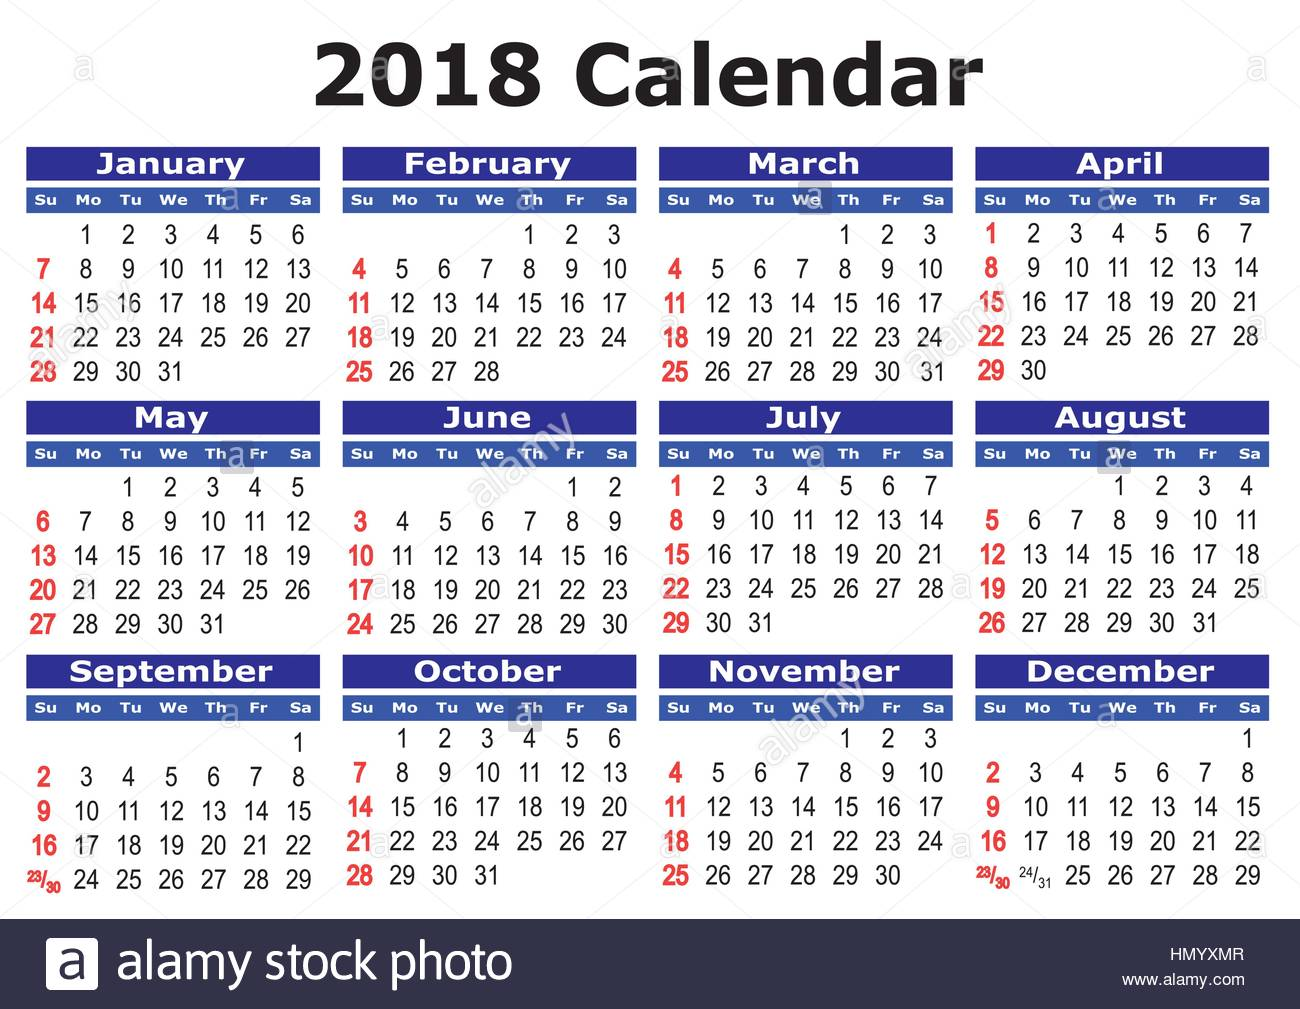 2018 calendar simple vector calendar for year 2018